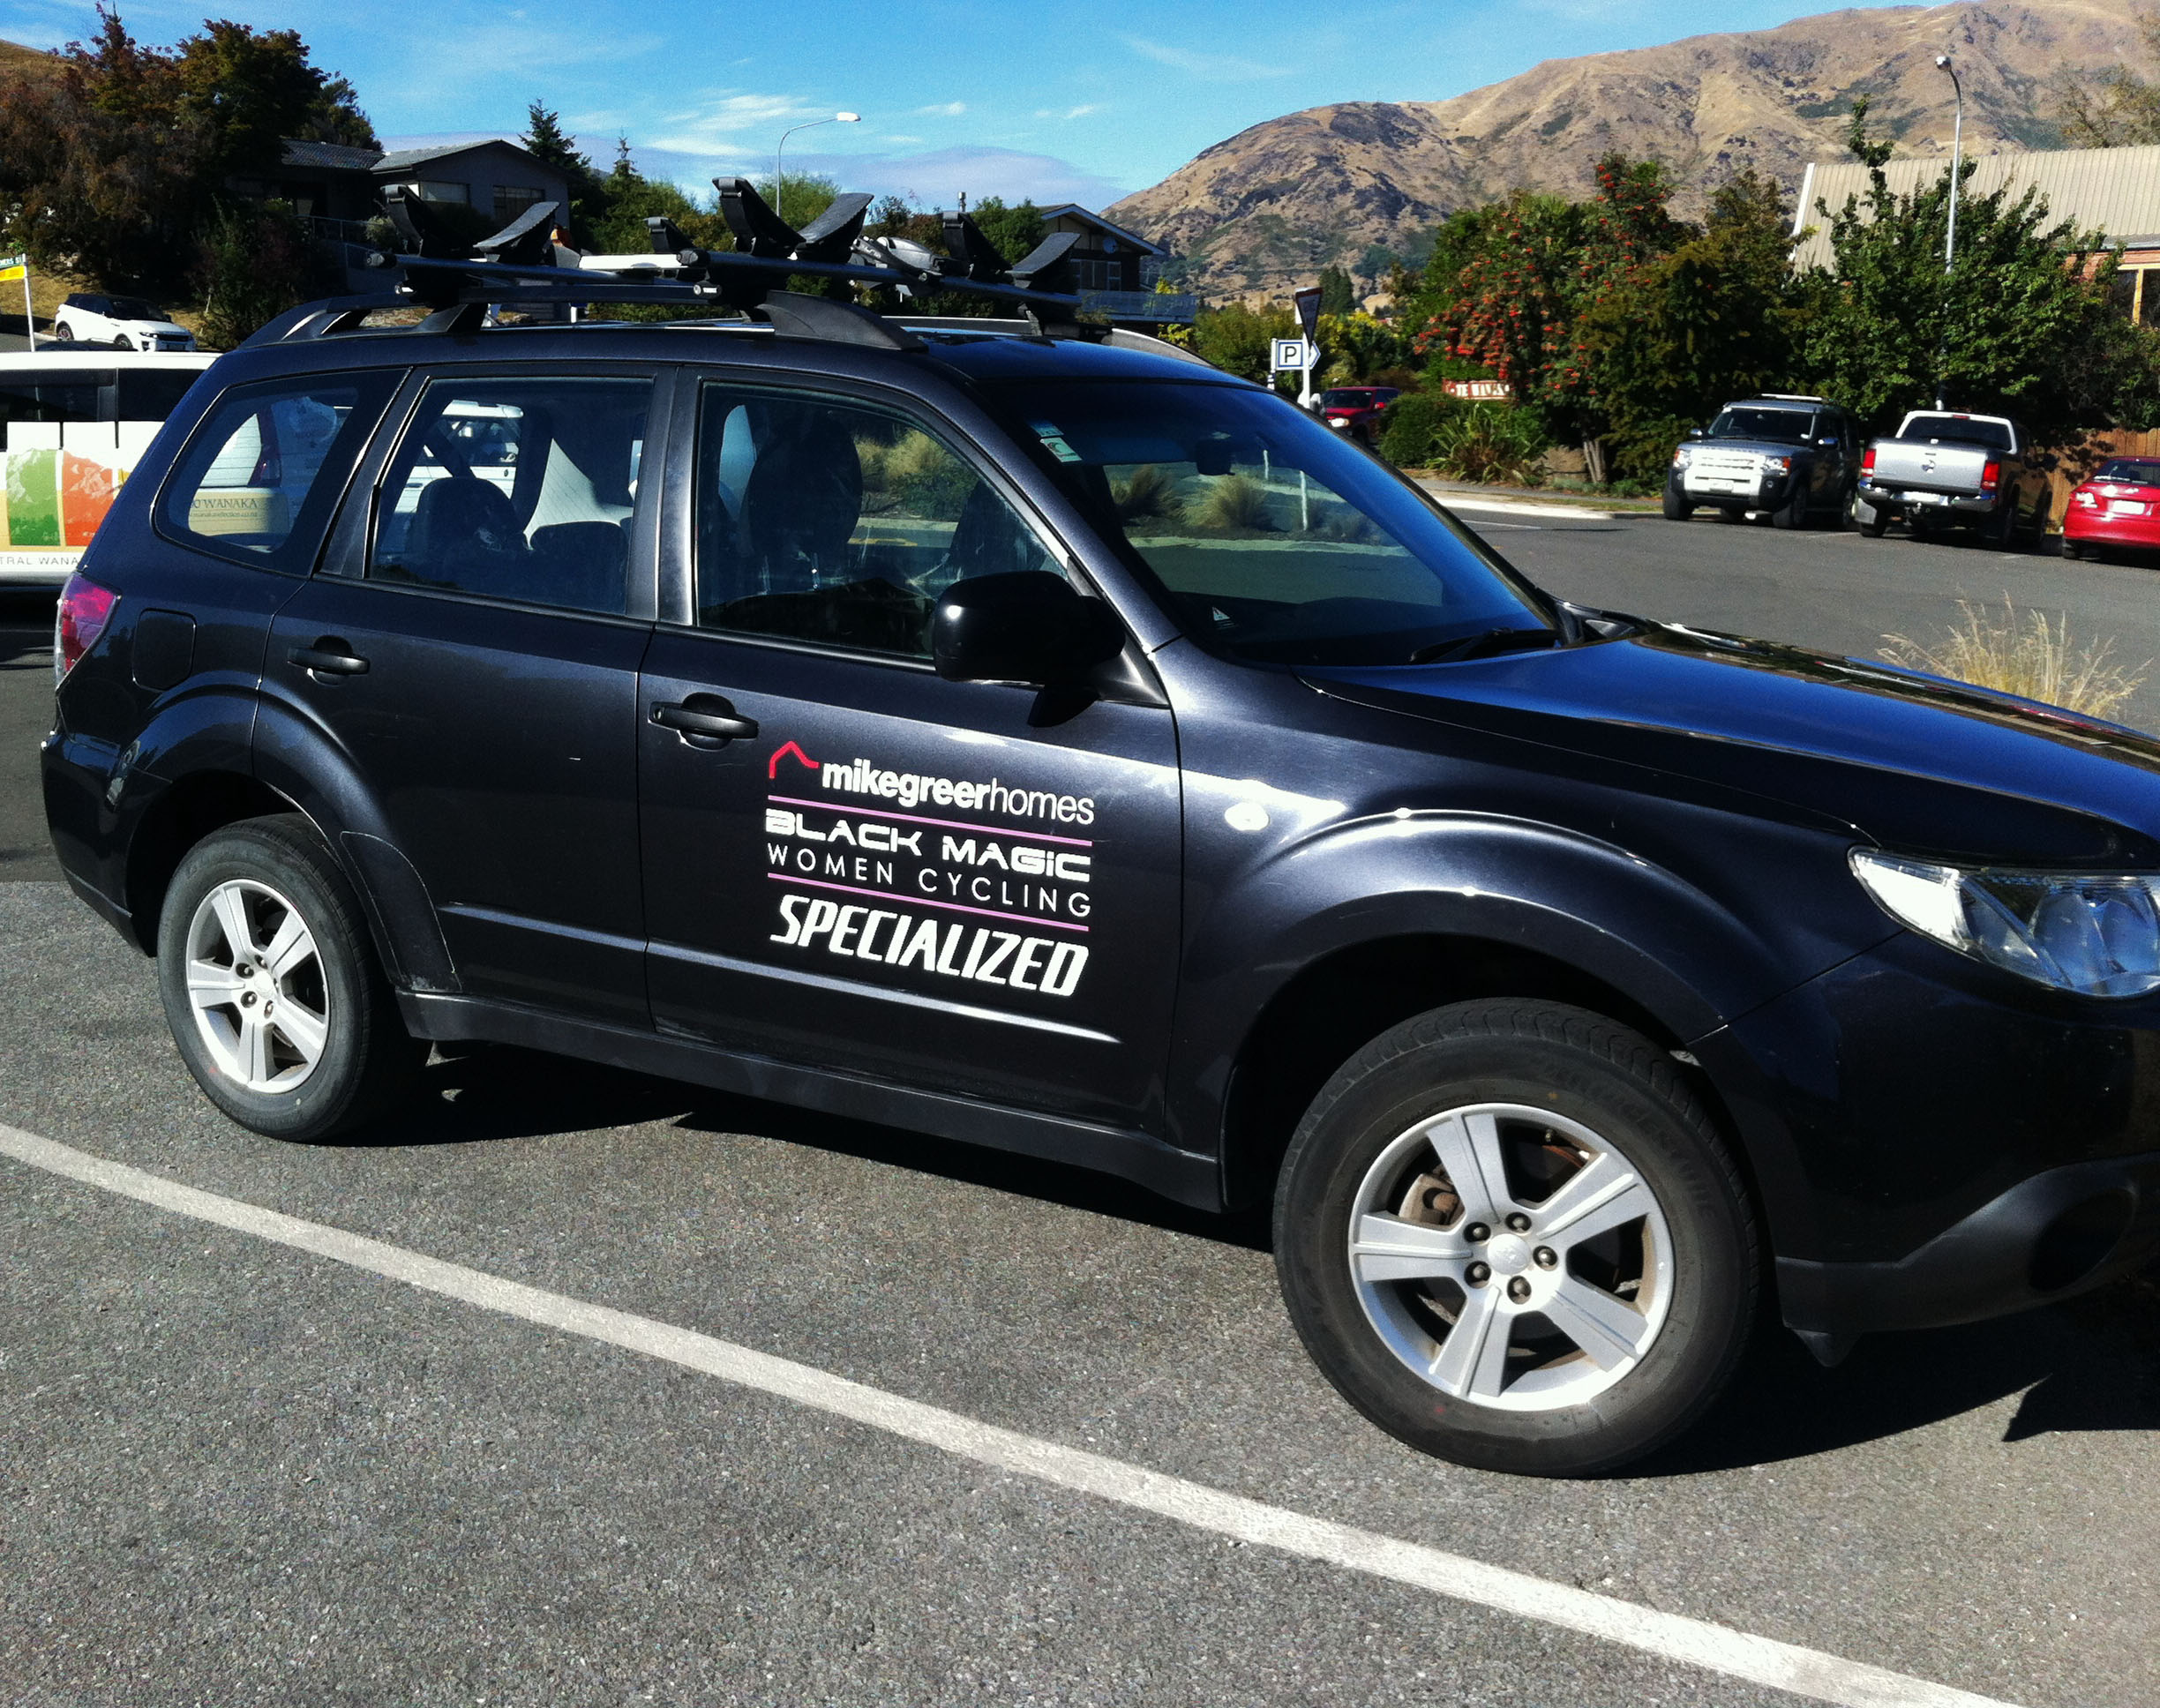 Mike Greer Homes Vehicle wrap